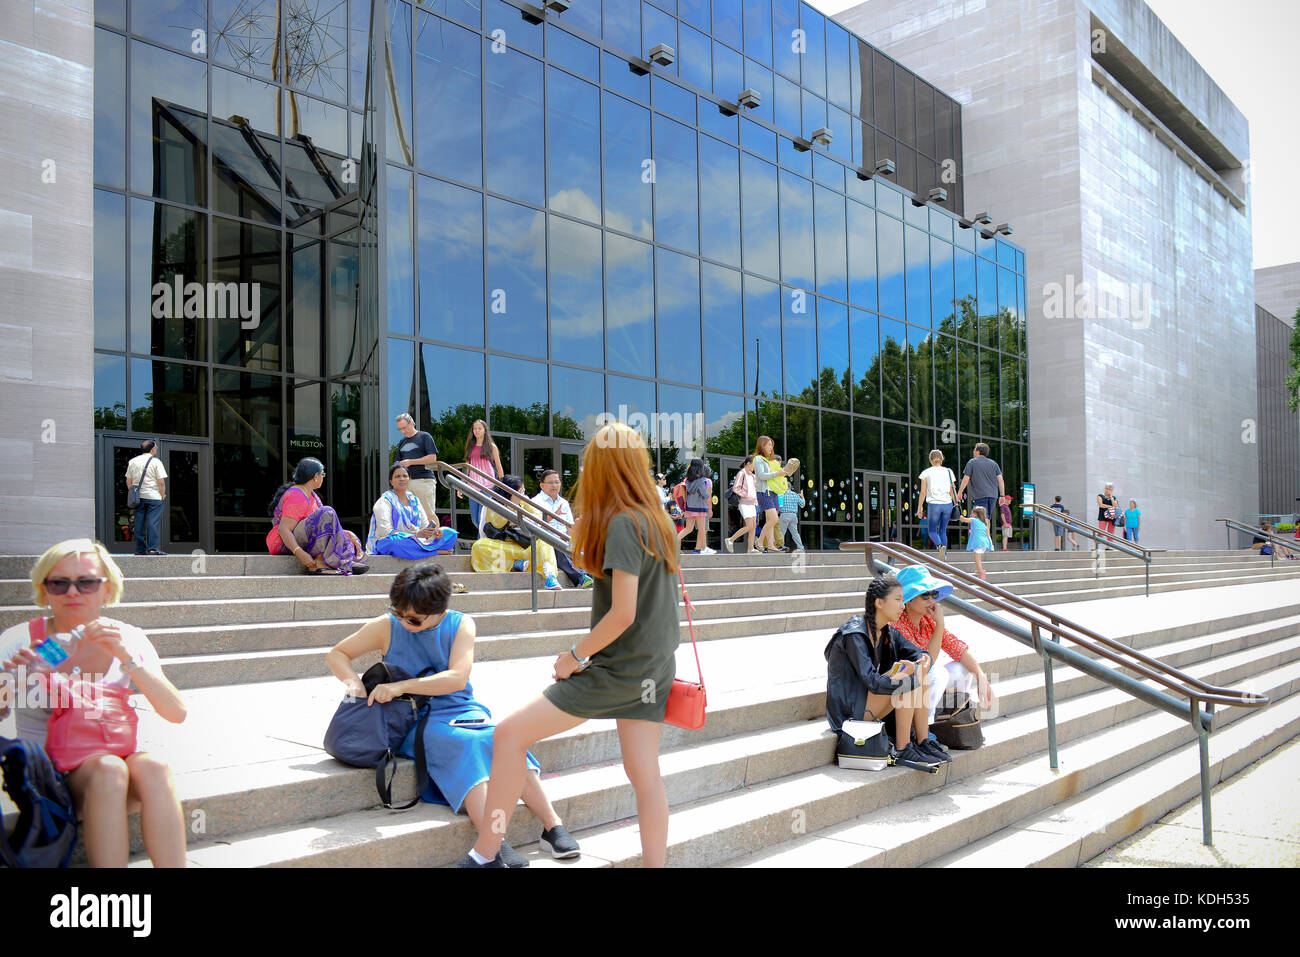 national air and space museum entrance Education exhibitions Washington DC people architecture modern Smithsonian - Stock Image